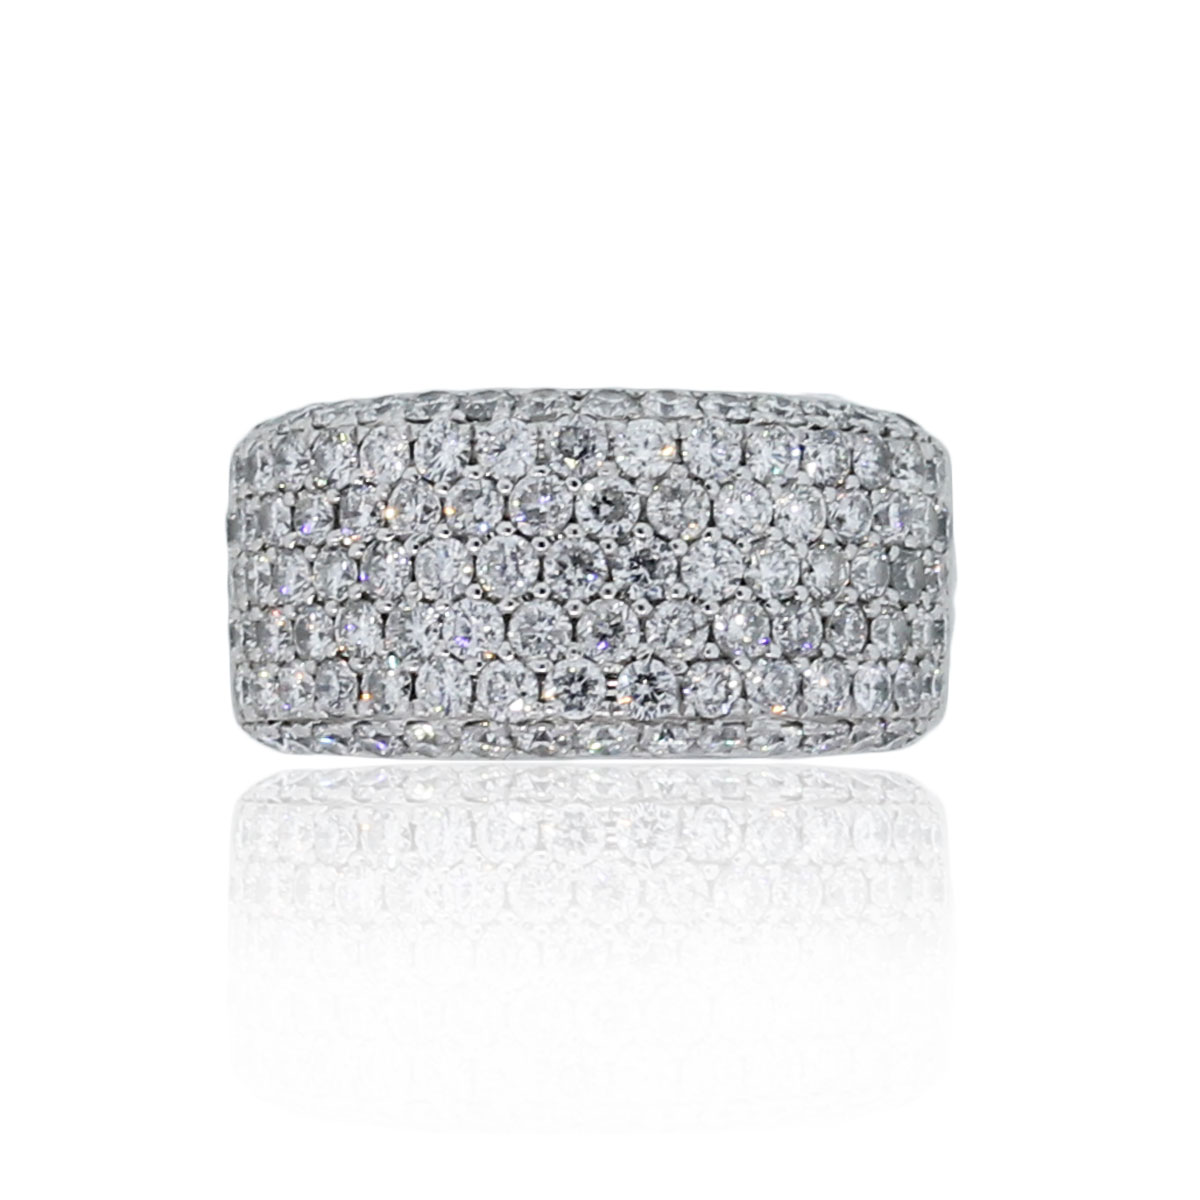 You are viewing this 14k White Gold 2ctw Diamond Pave Band Ring!